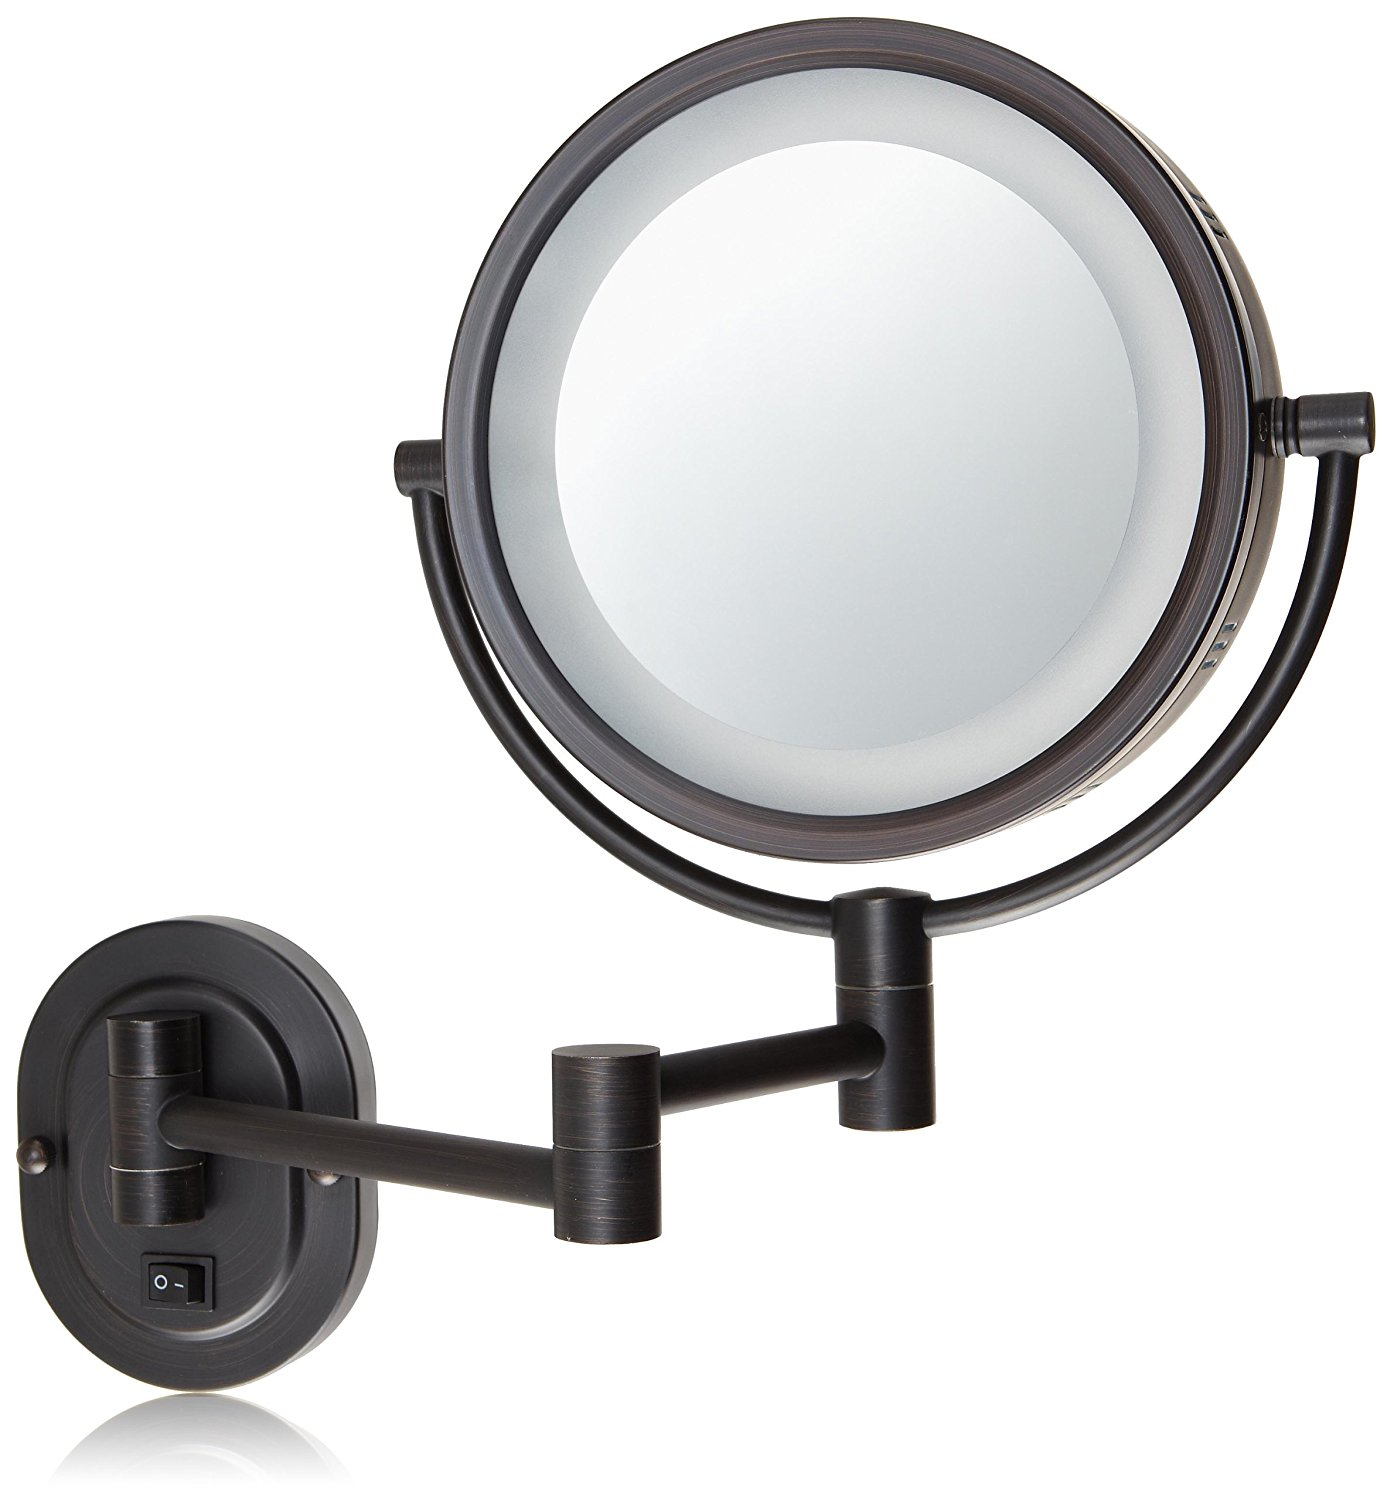 Hl65bzd 8 Inch Lighted Direct Wire Wall Mount Makeup Mirror With 5x Magnification Bronze Finish 14 Extension And